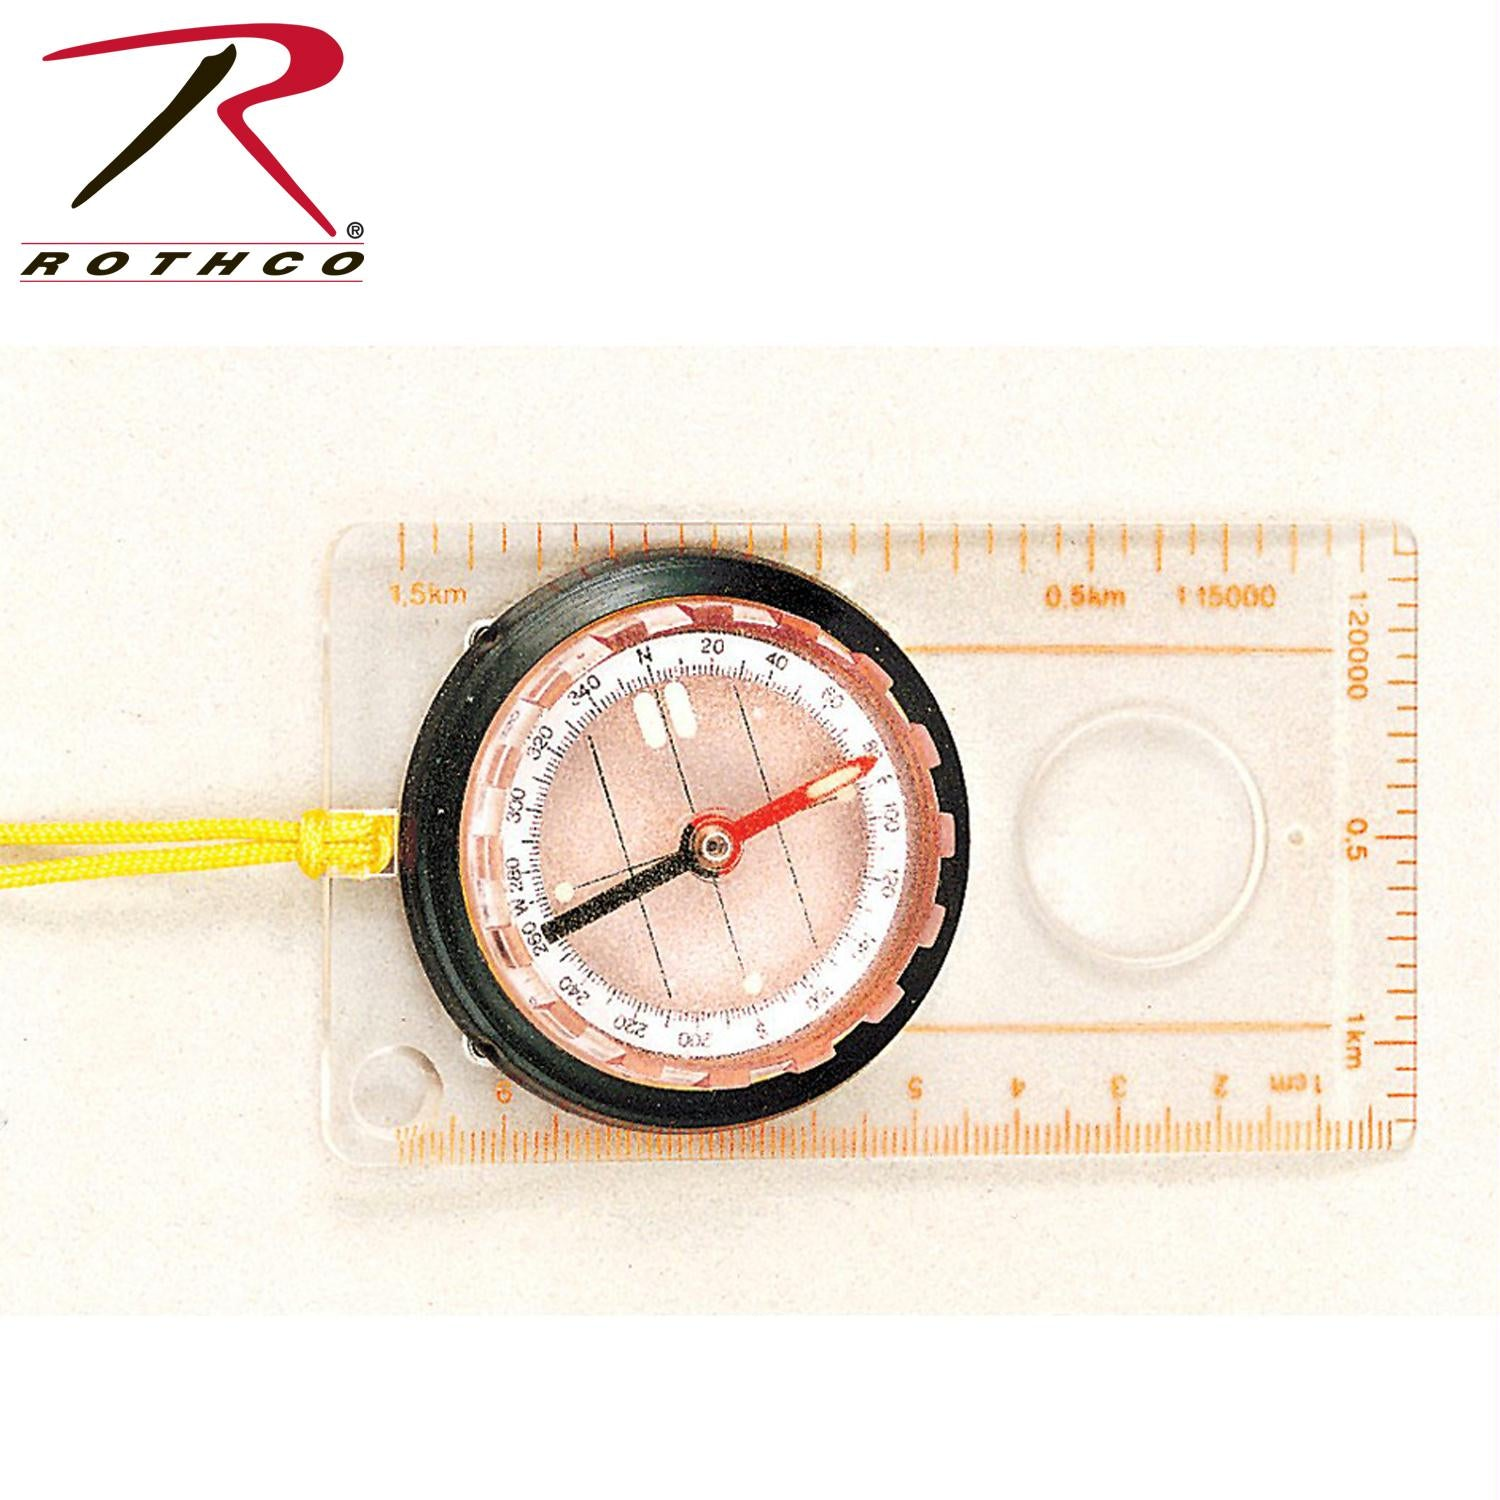 Rothco Map Compass - Clear